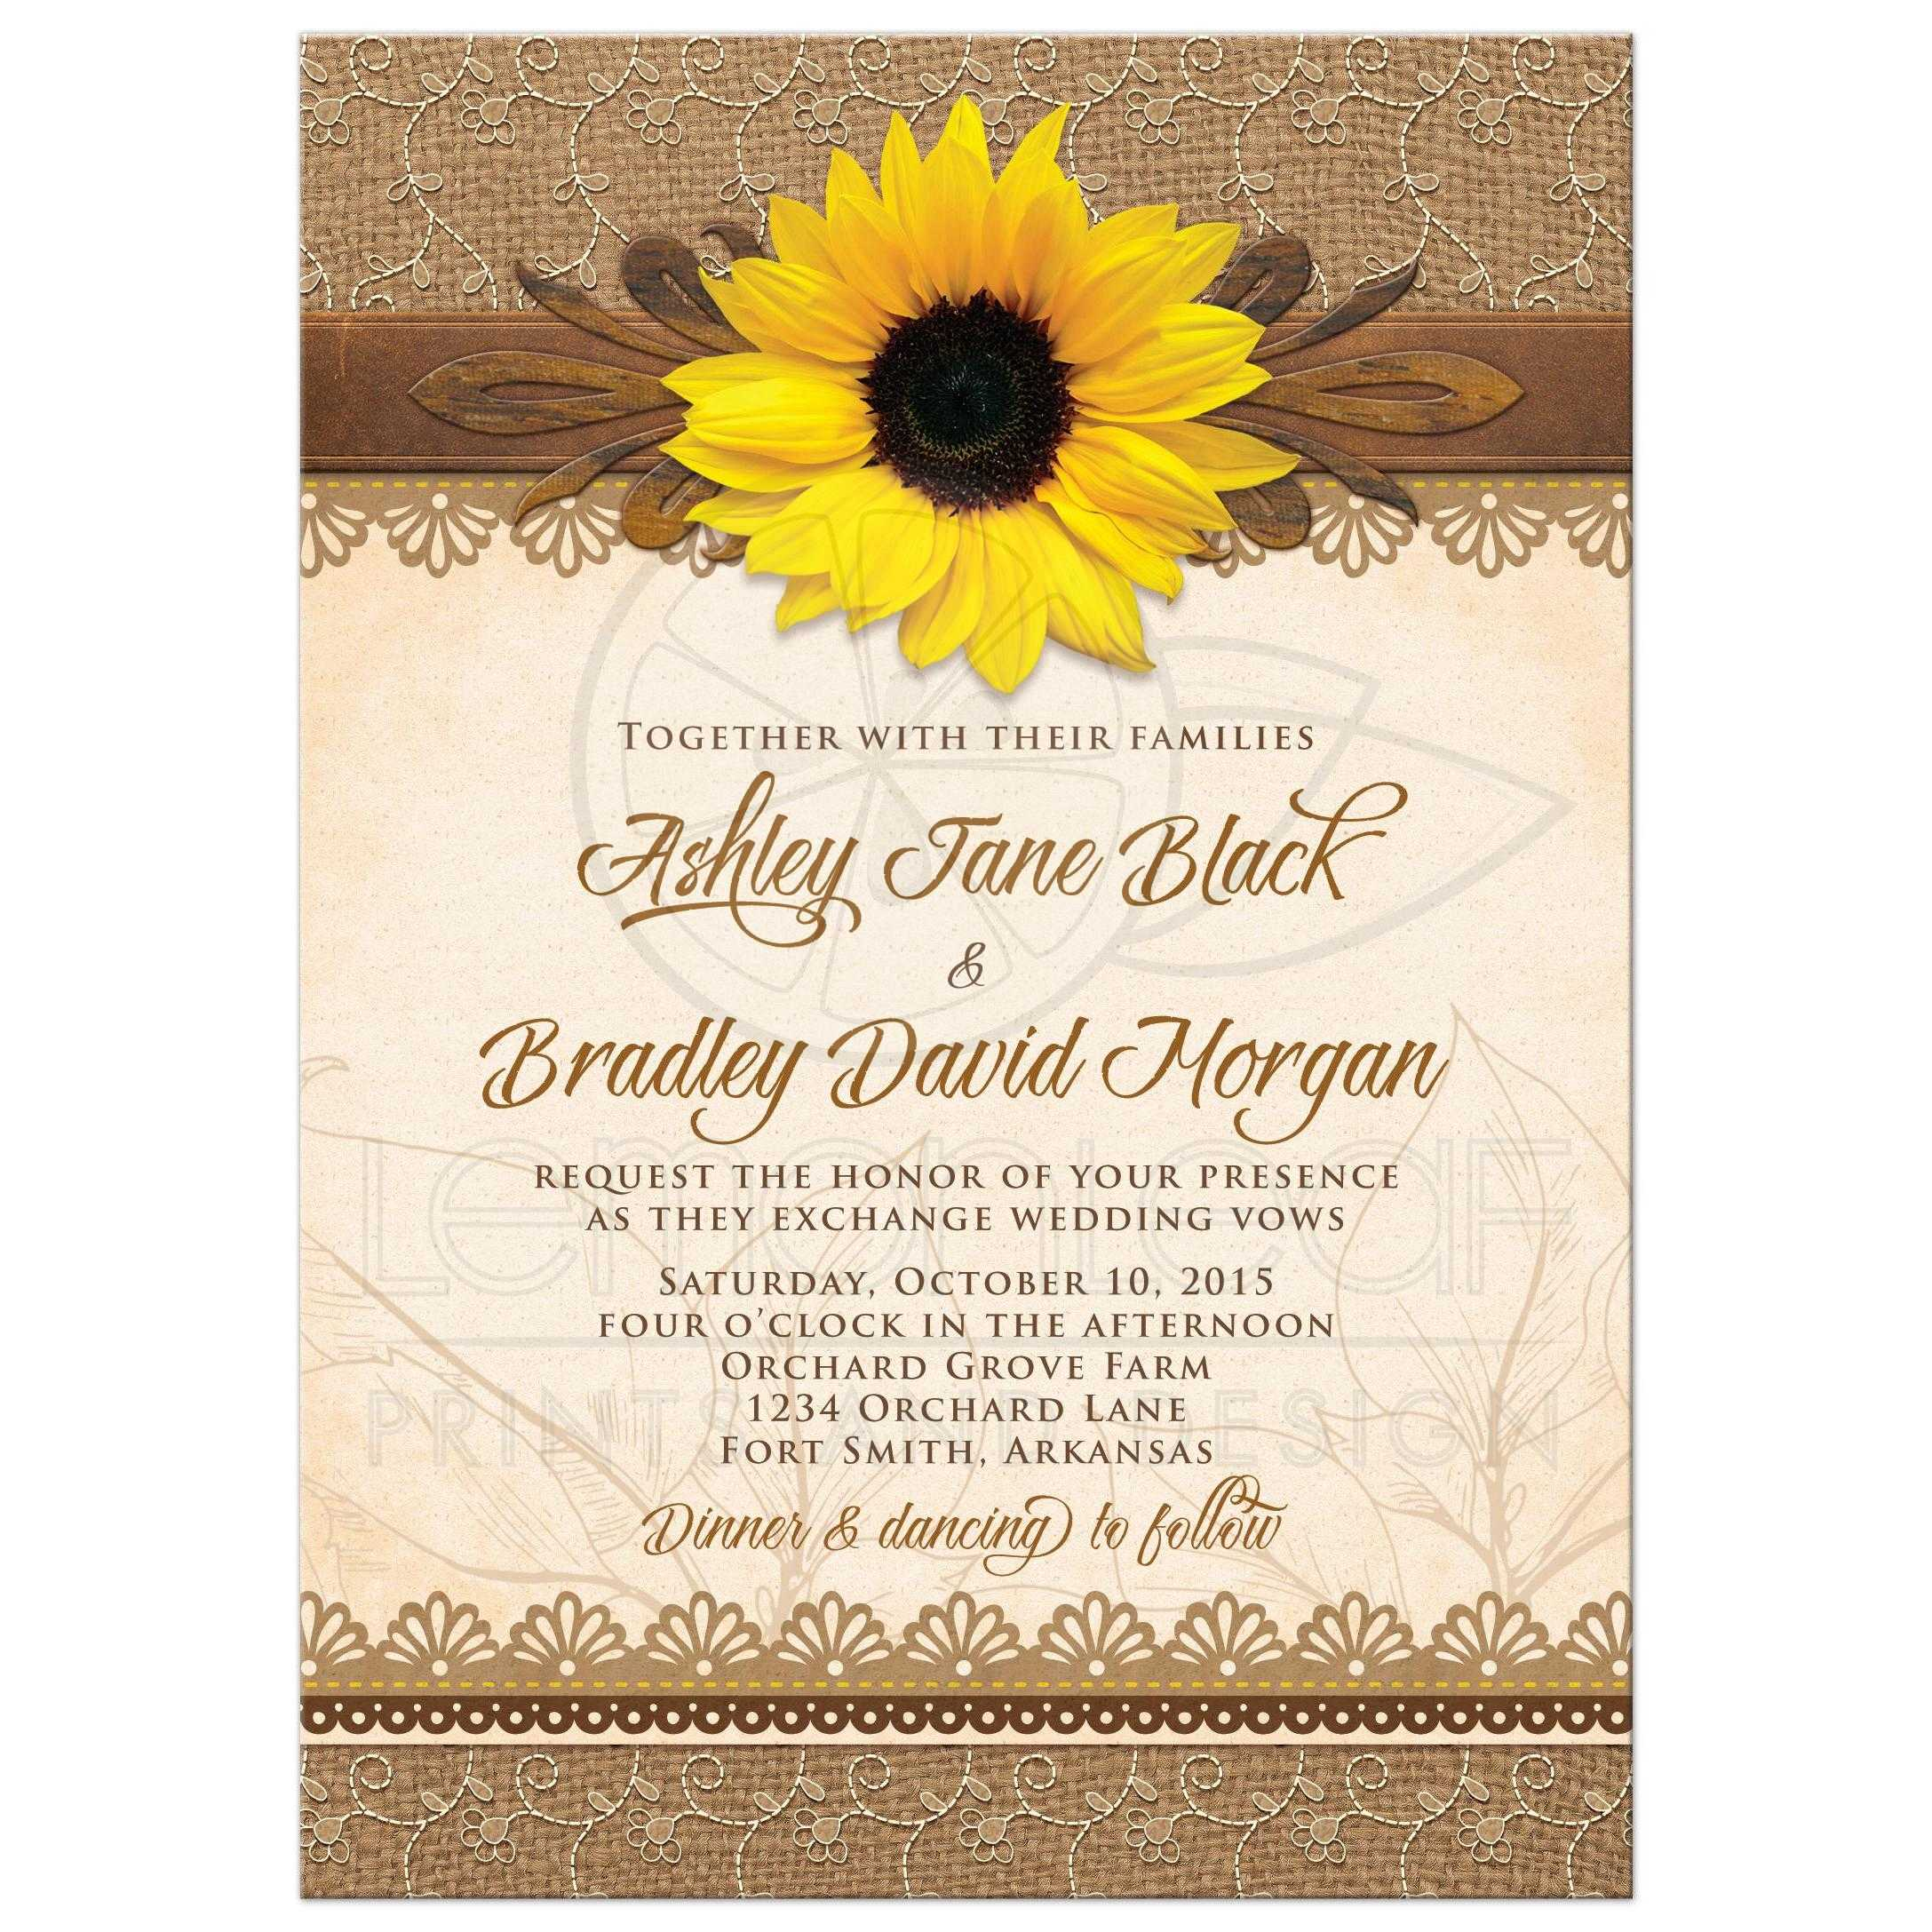 Invitation Rustic Sunflower Burlap Lace Wood